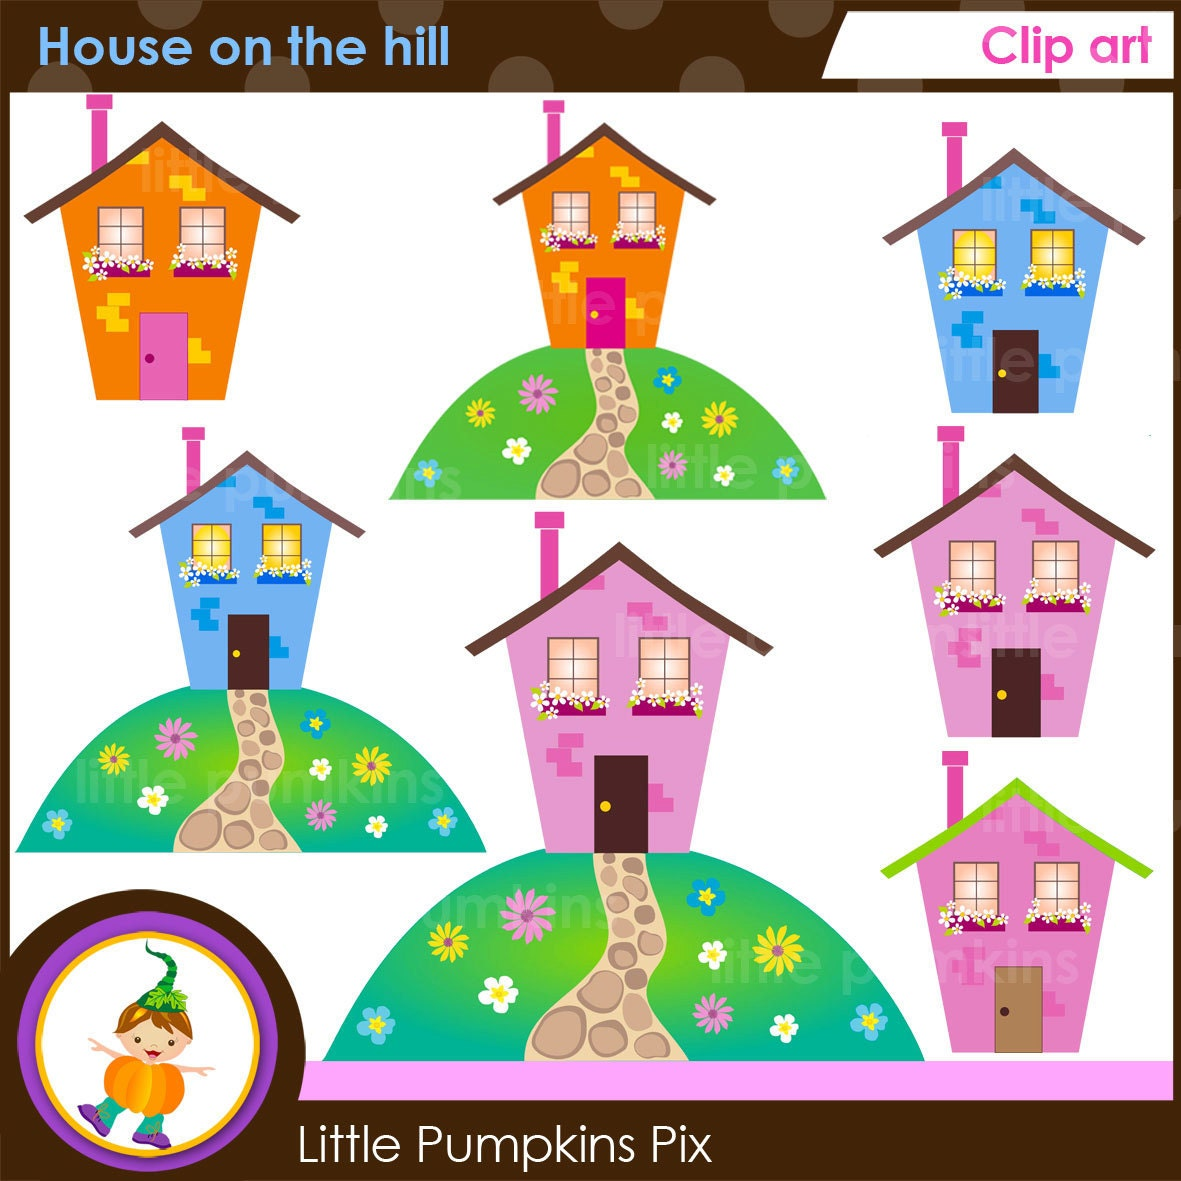 house on hill clipart - photo #4